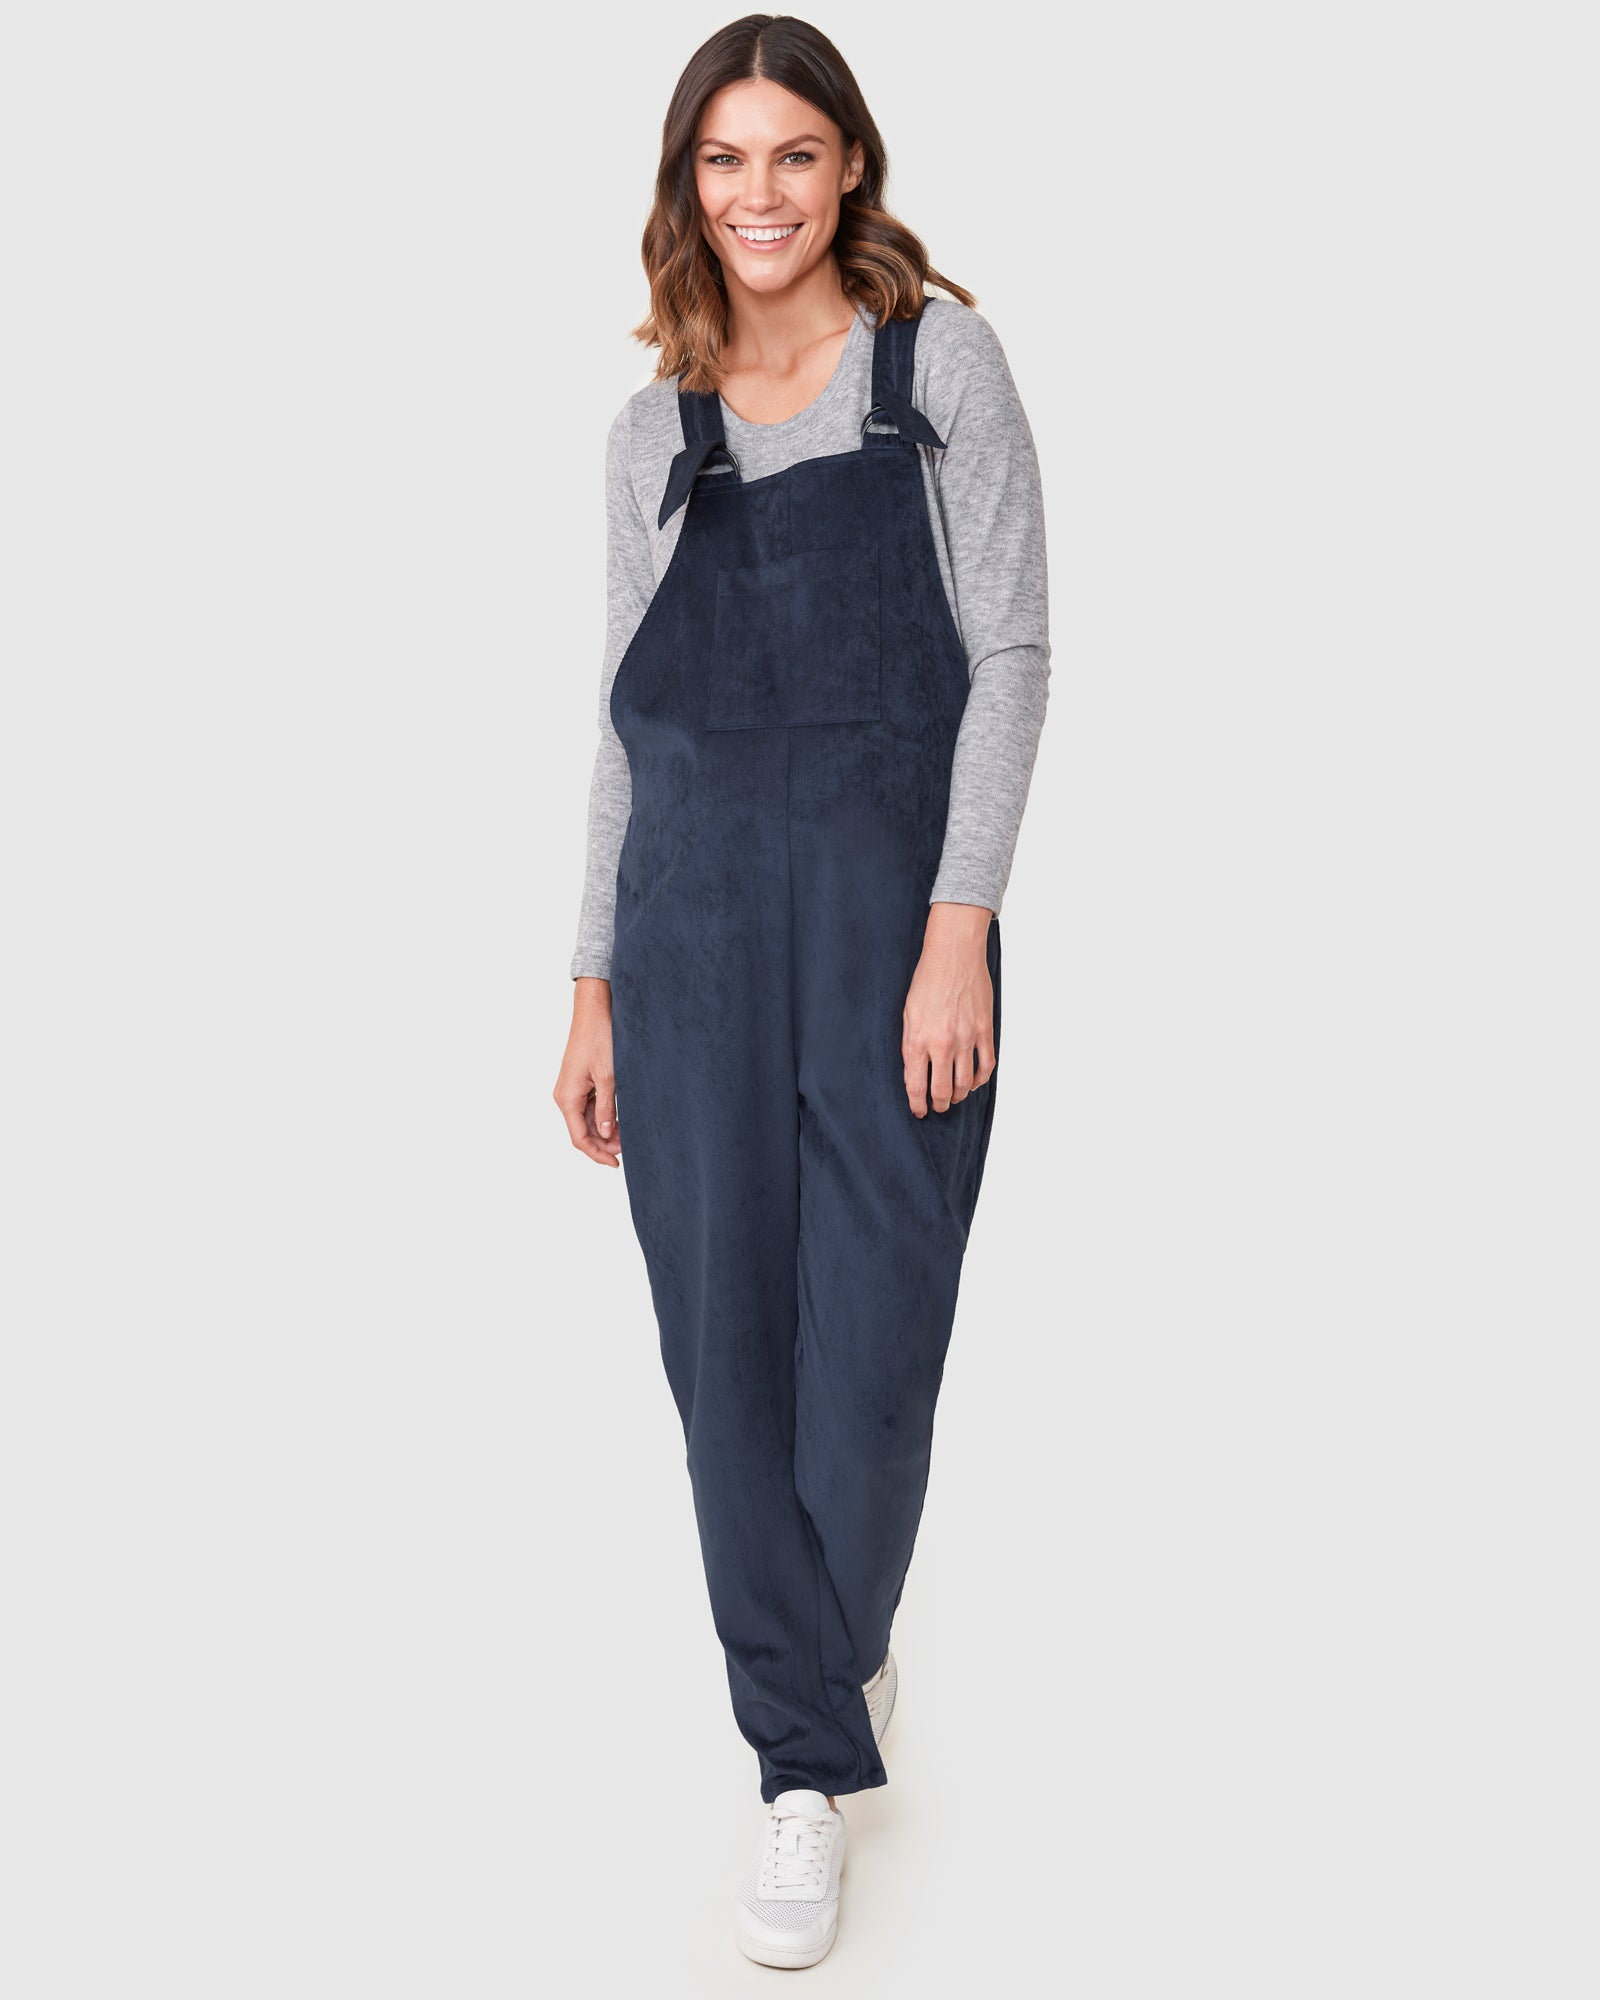 6 Jumpsuit Styles You Can Effortlessly Pull Off at the